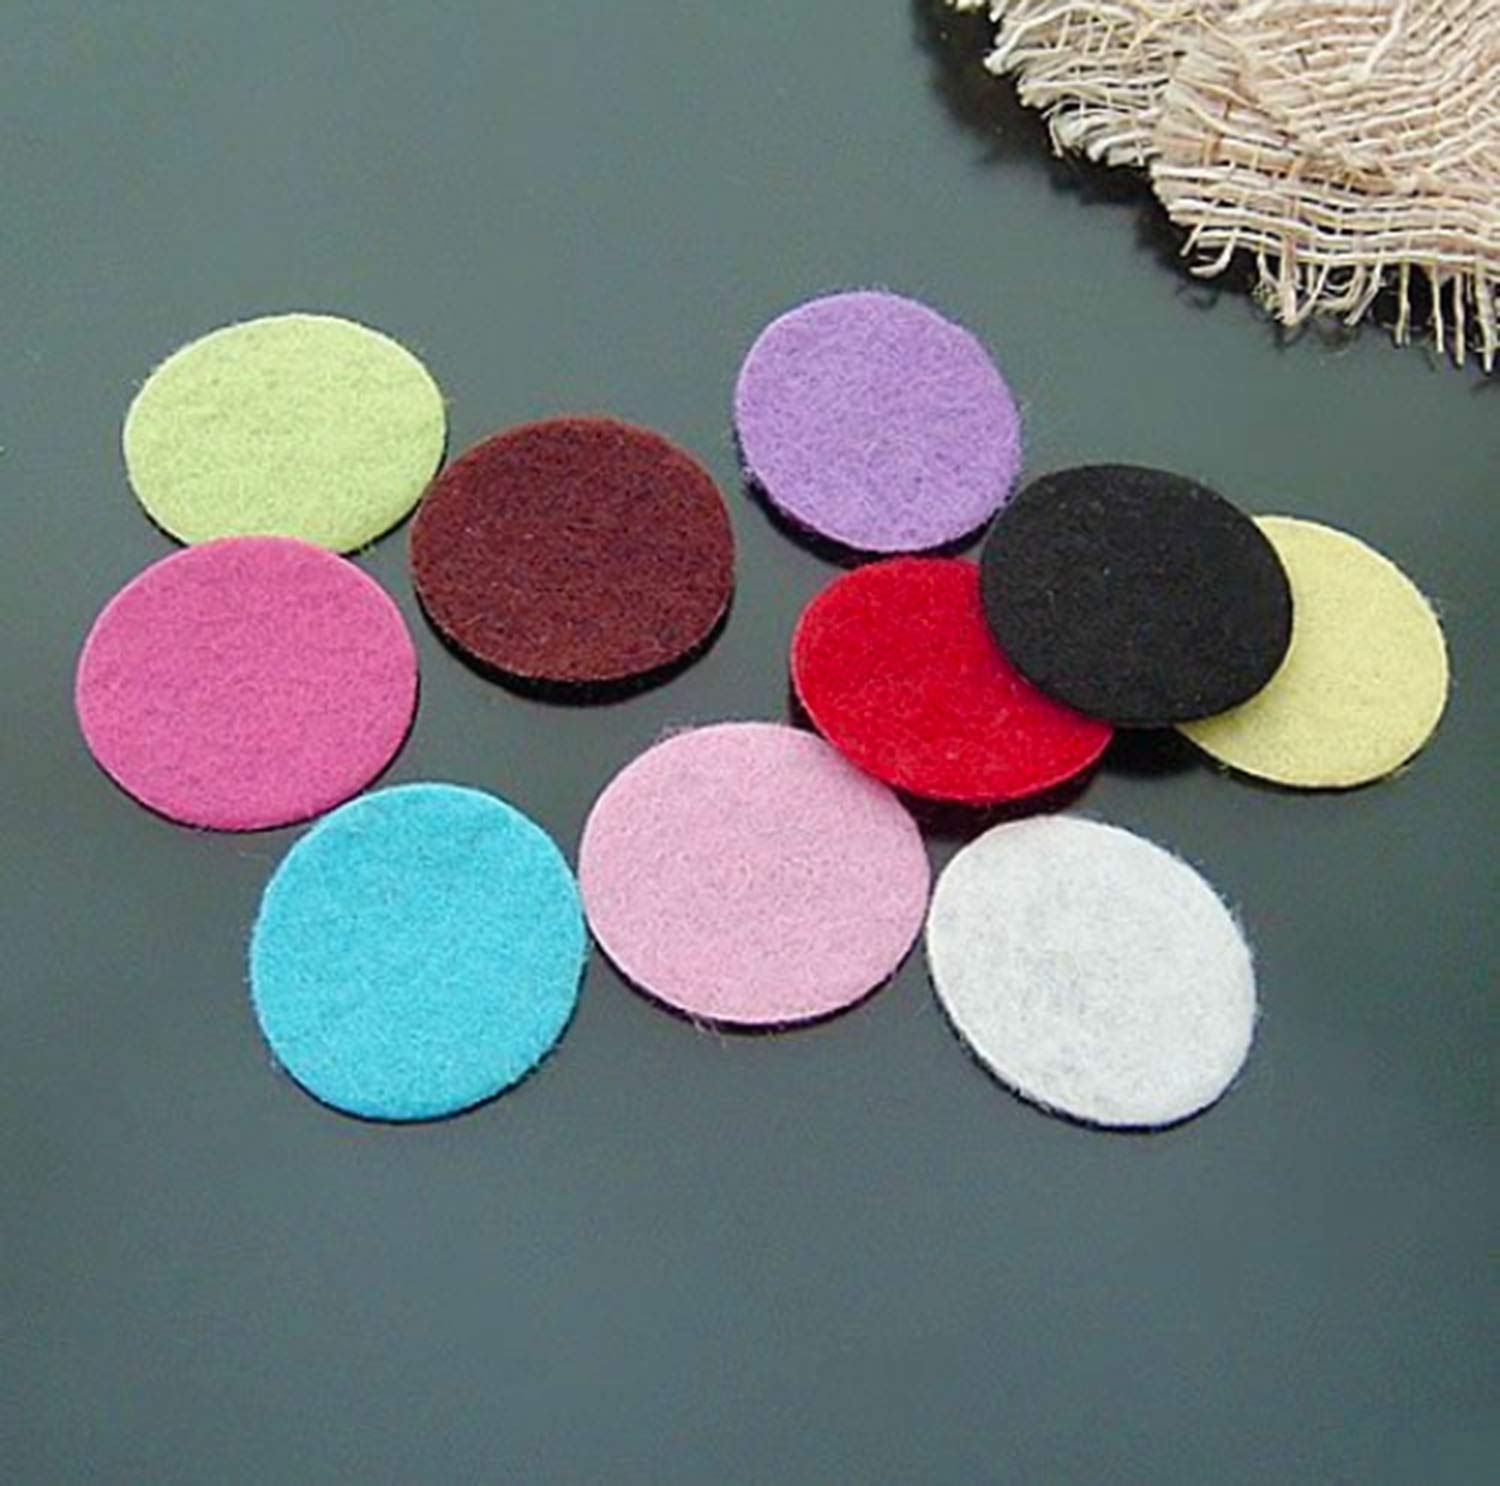 Adhesive Felt Circles; Adhesive Felt Circles for DIY and Sewing Handcraft 200 Count, White 1 Inch,